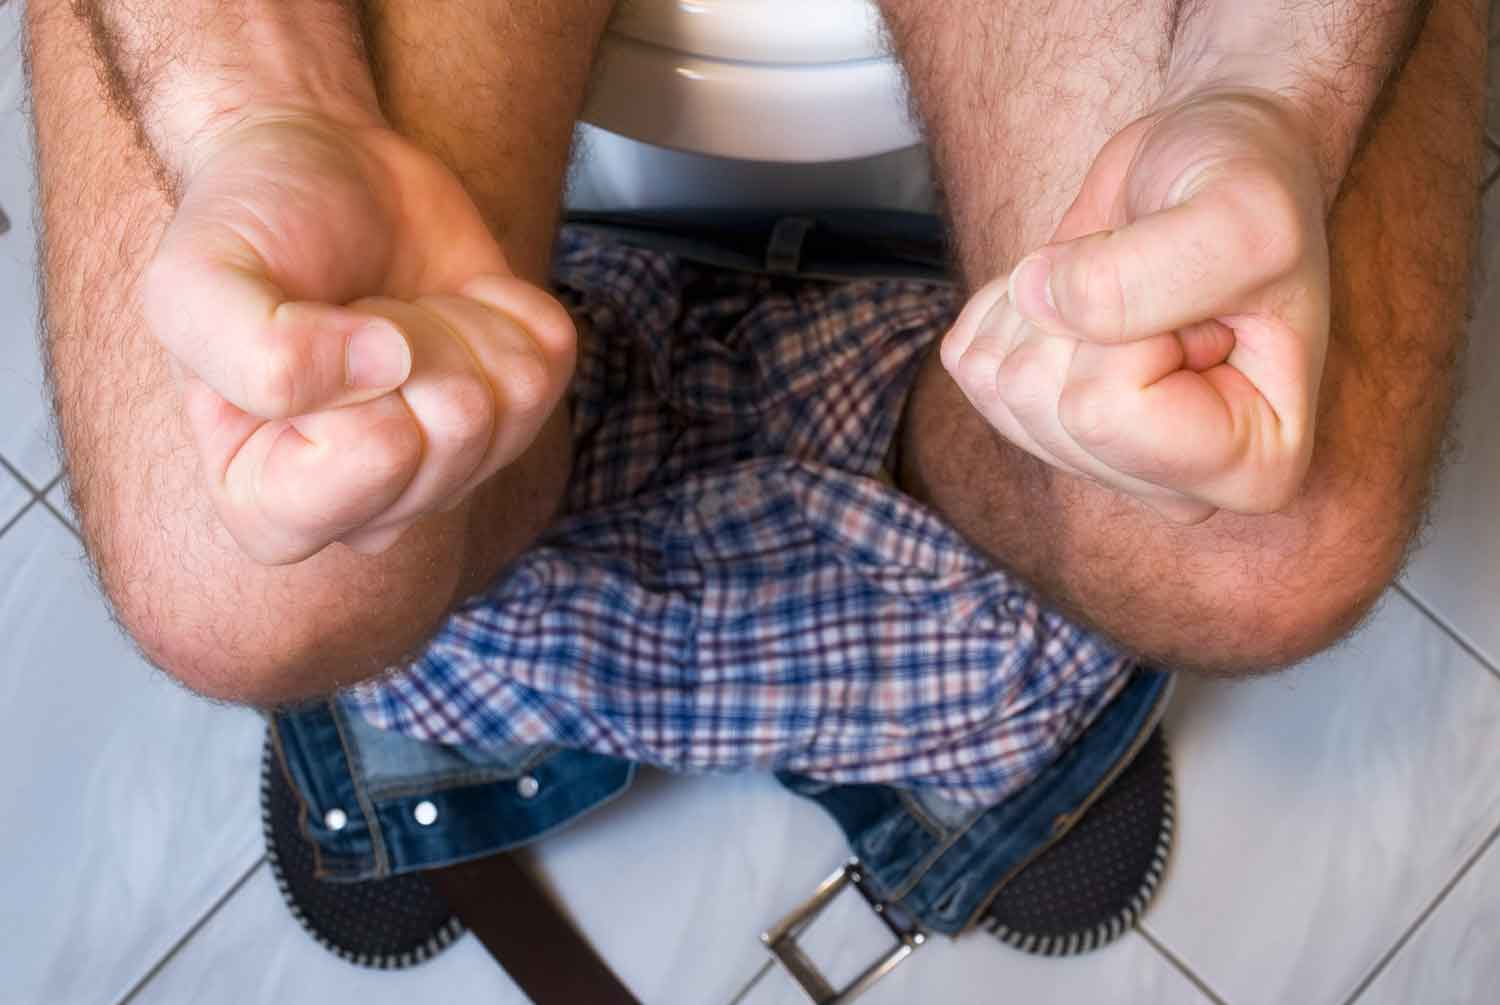 Why you're constipated - and how to heal it